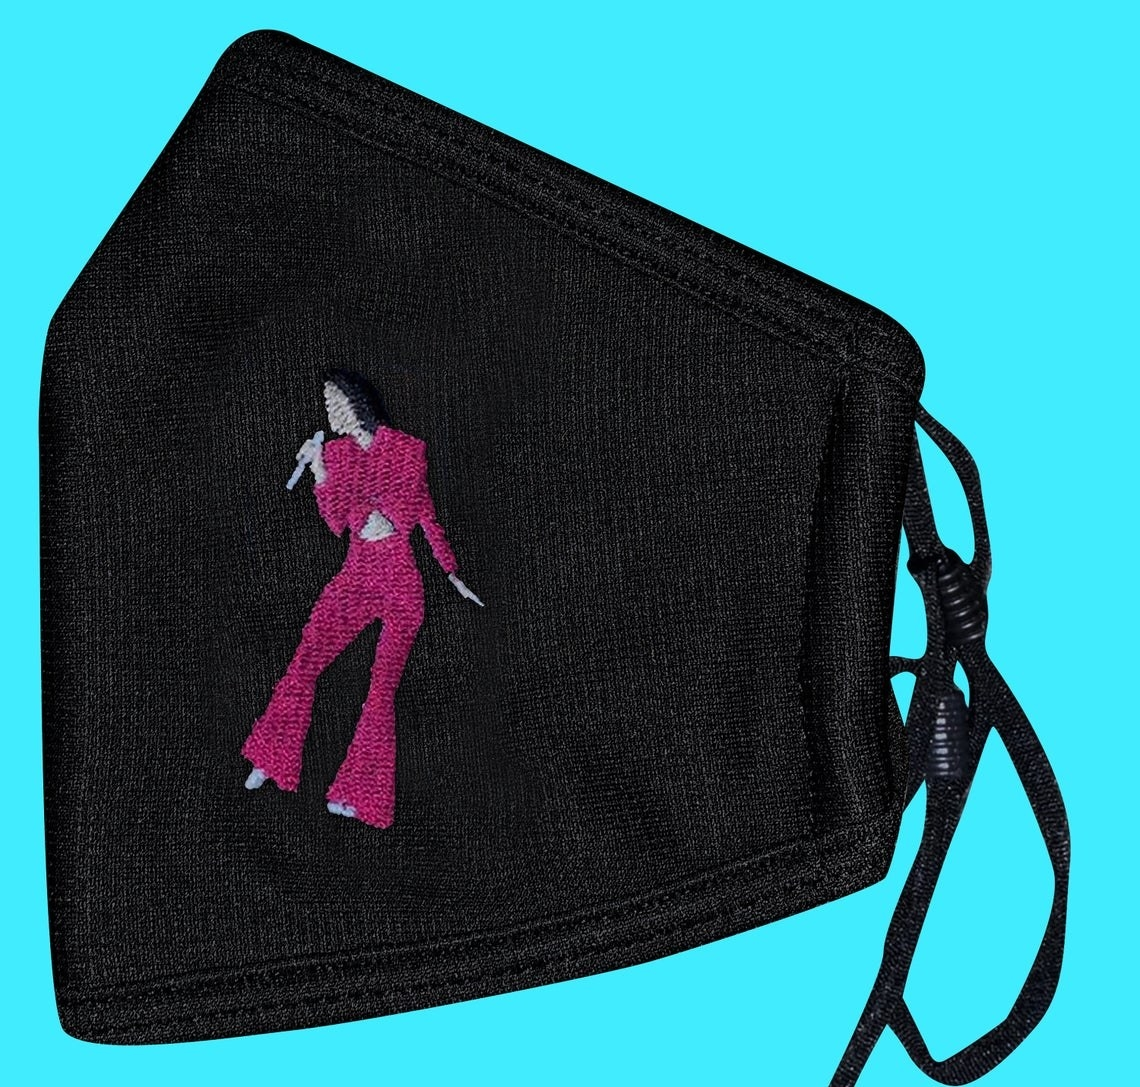 The Selena Quintanilla embroidered facemask